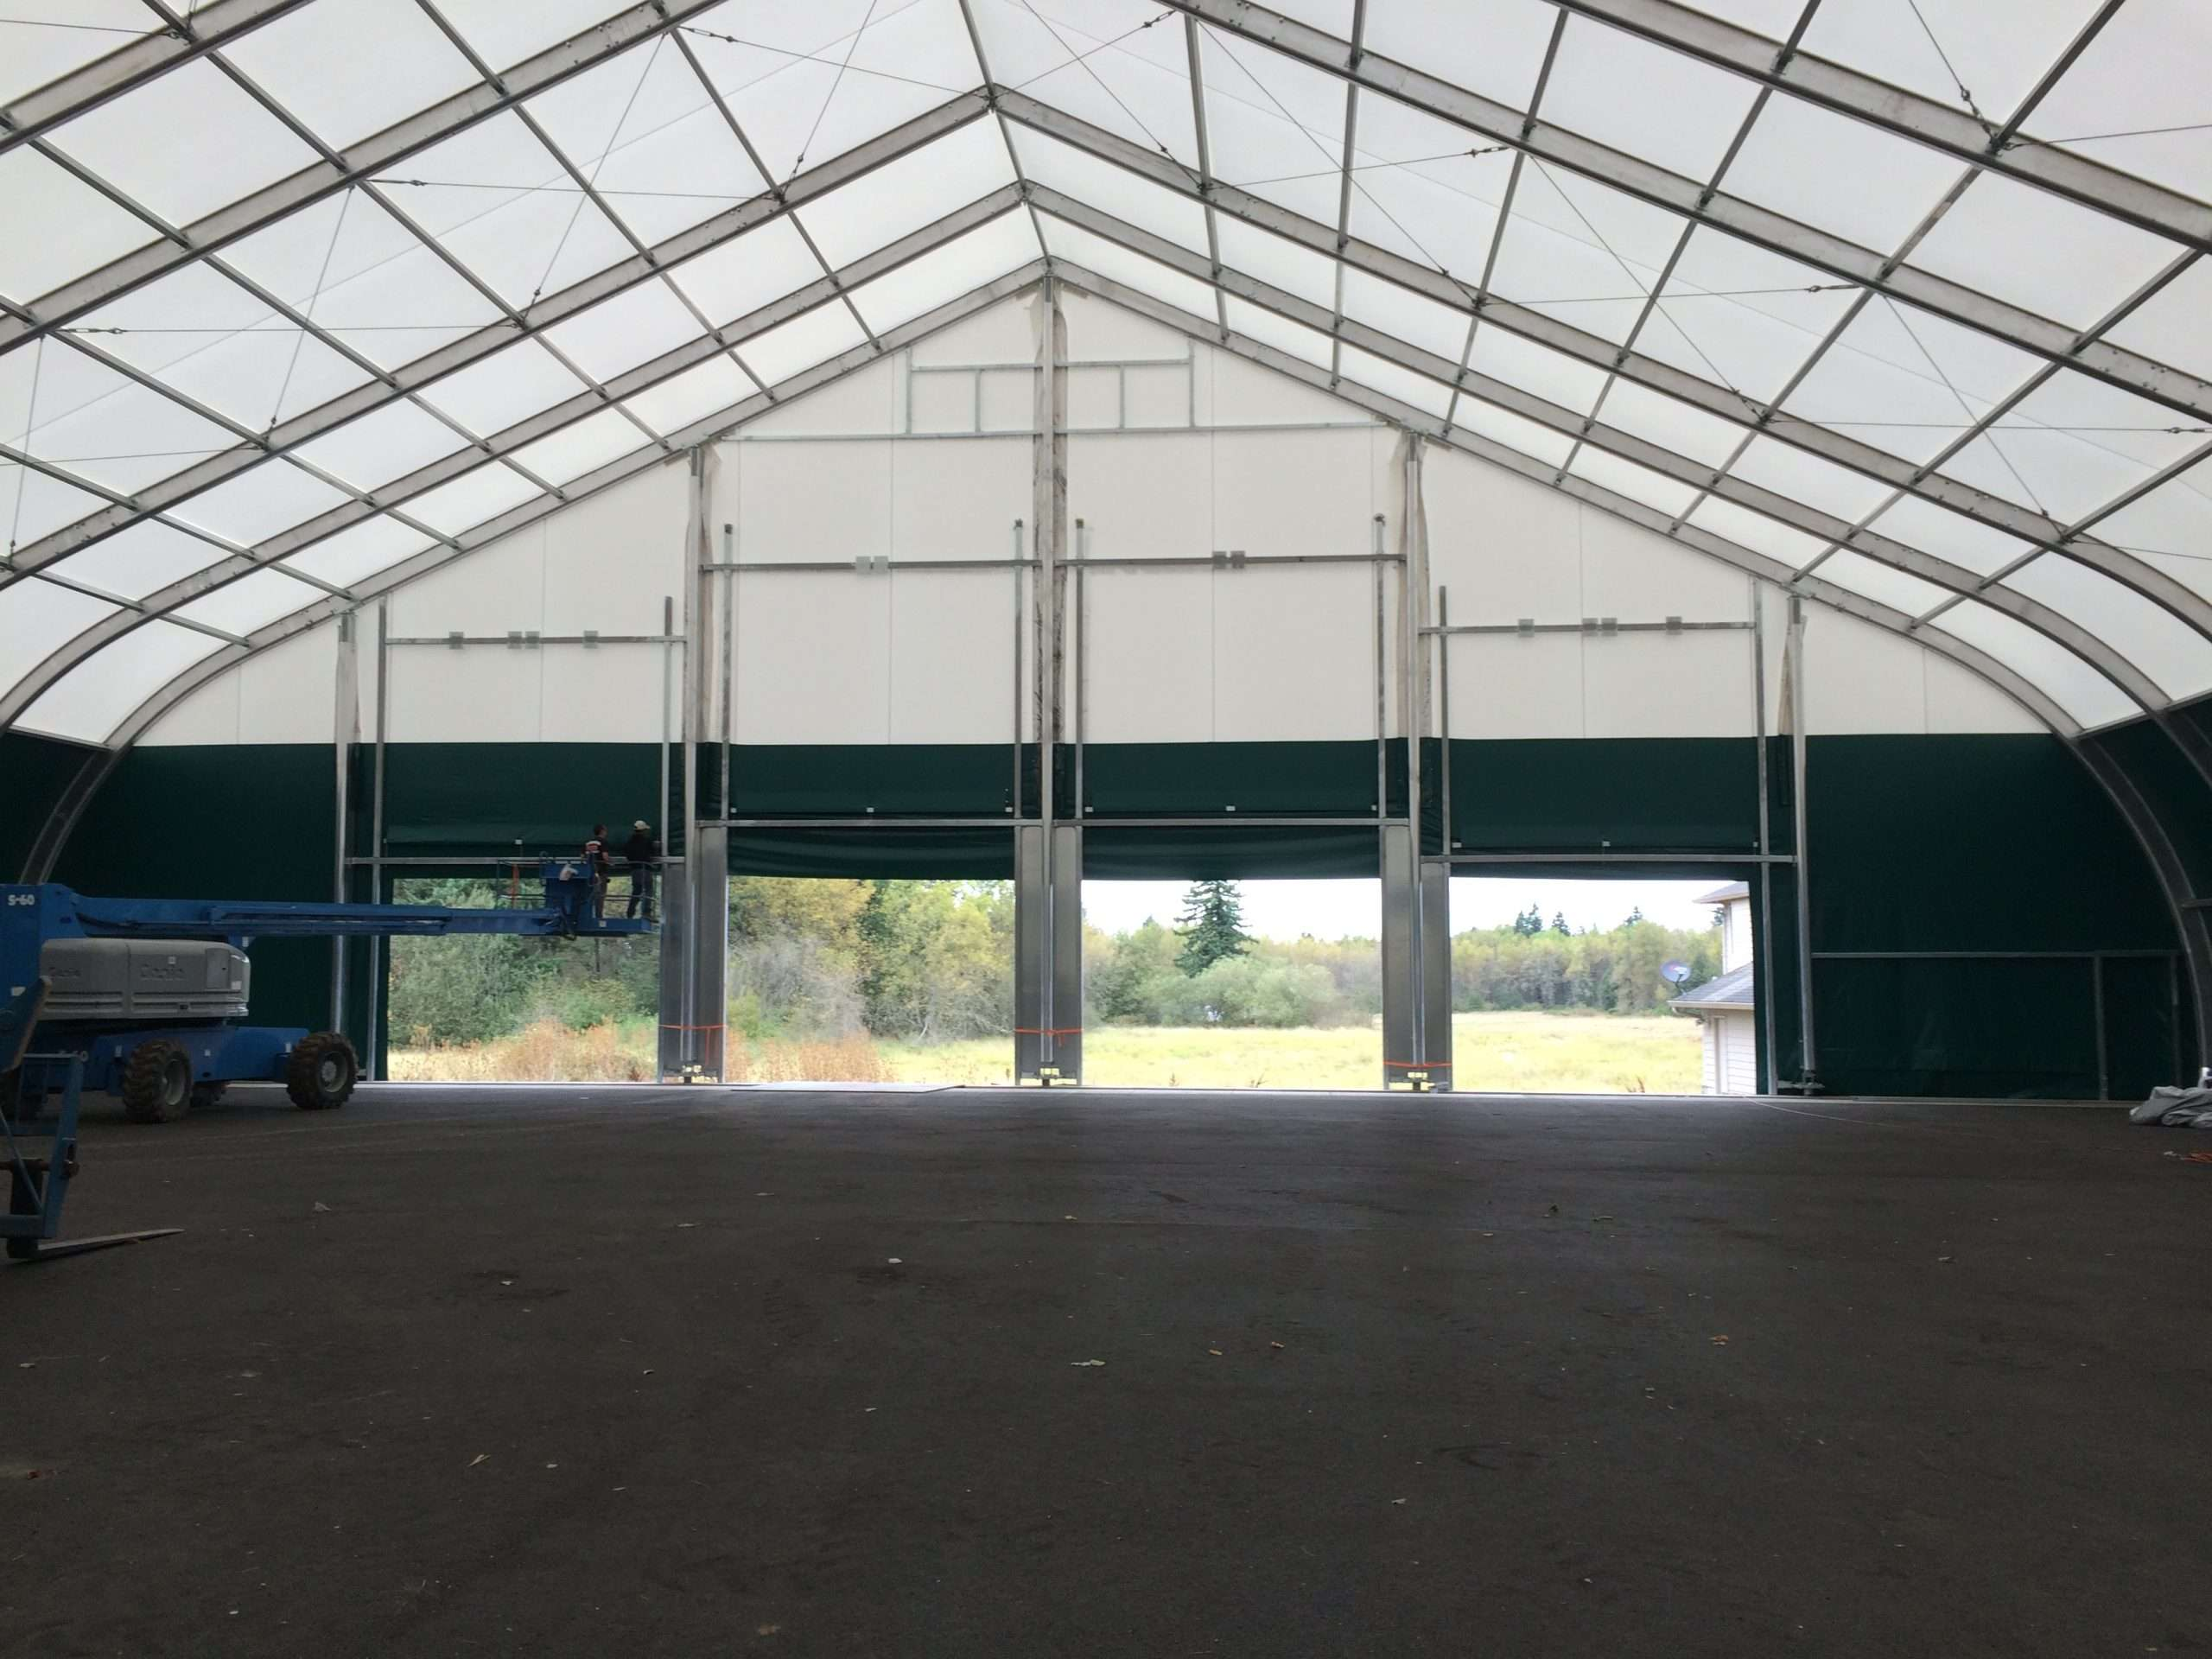 Why Tension Fabric Structures Are a Great Choice for Temporary Building Needs